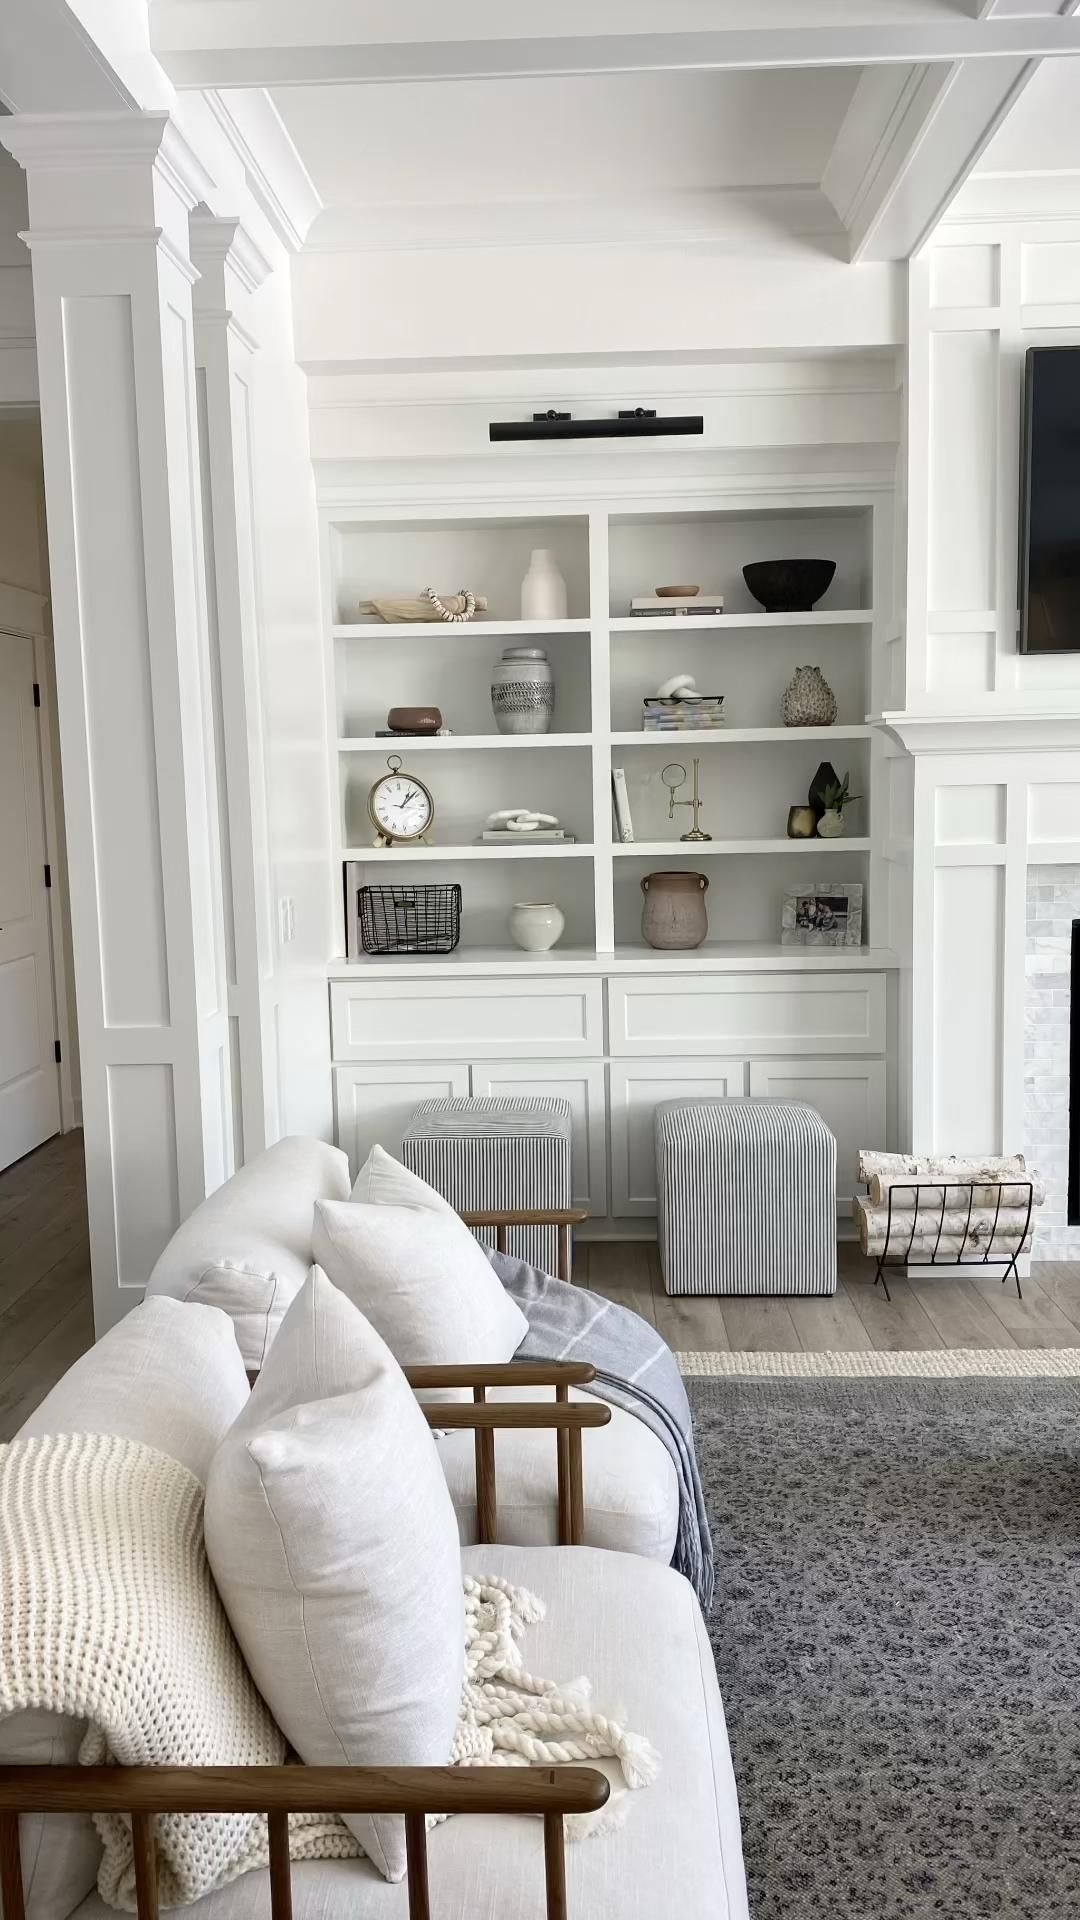 Keys to shelf styling and refreshing your spaces